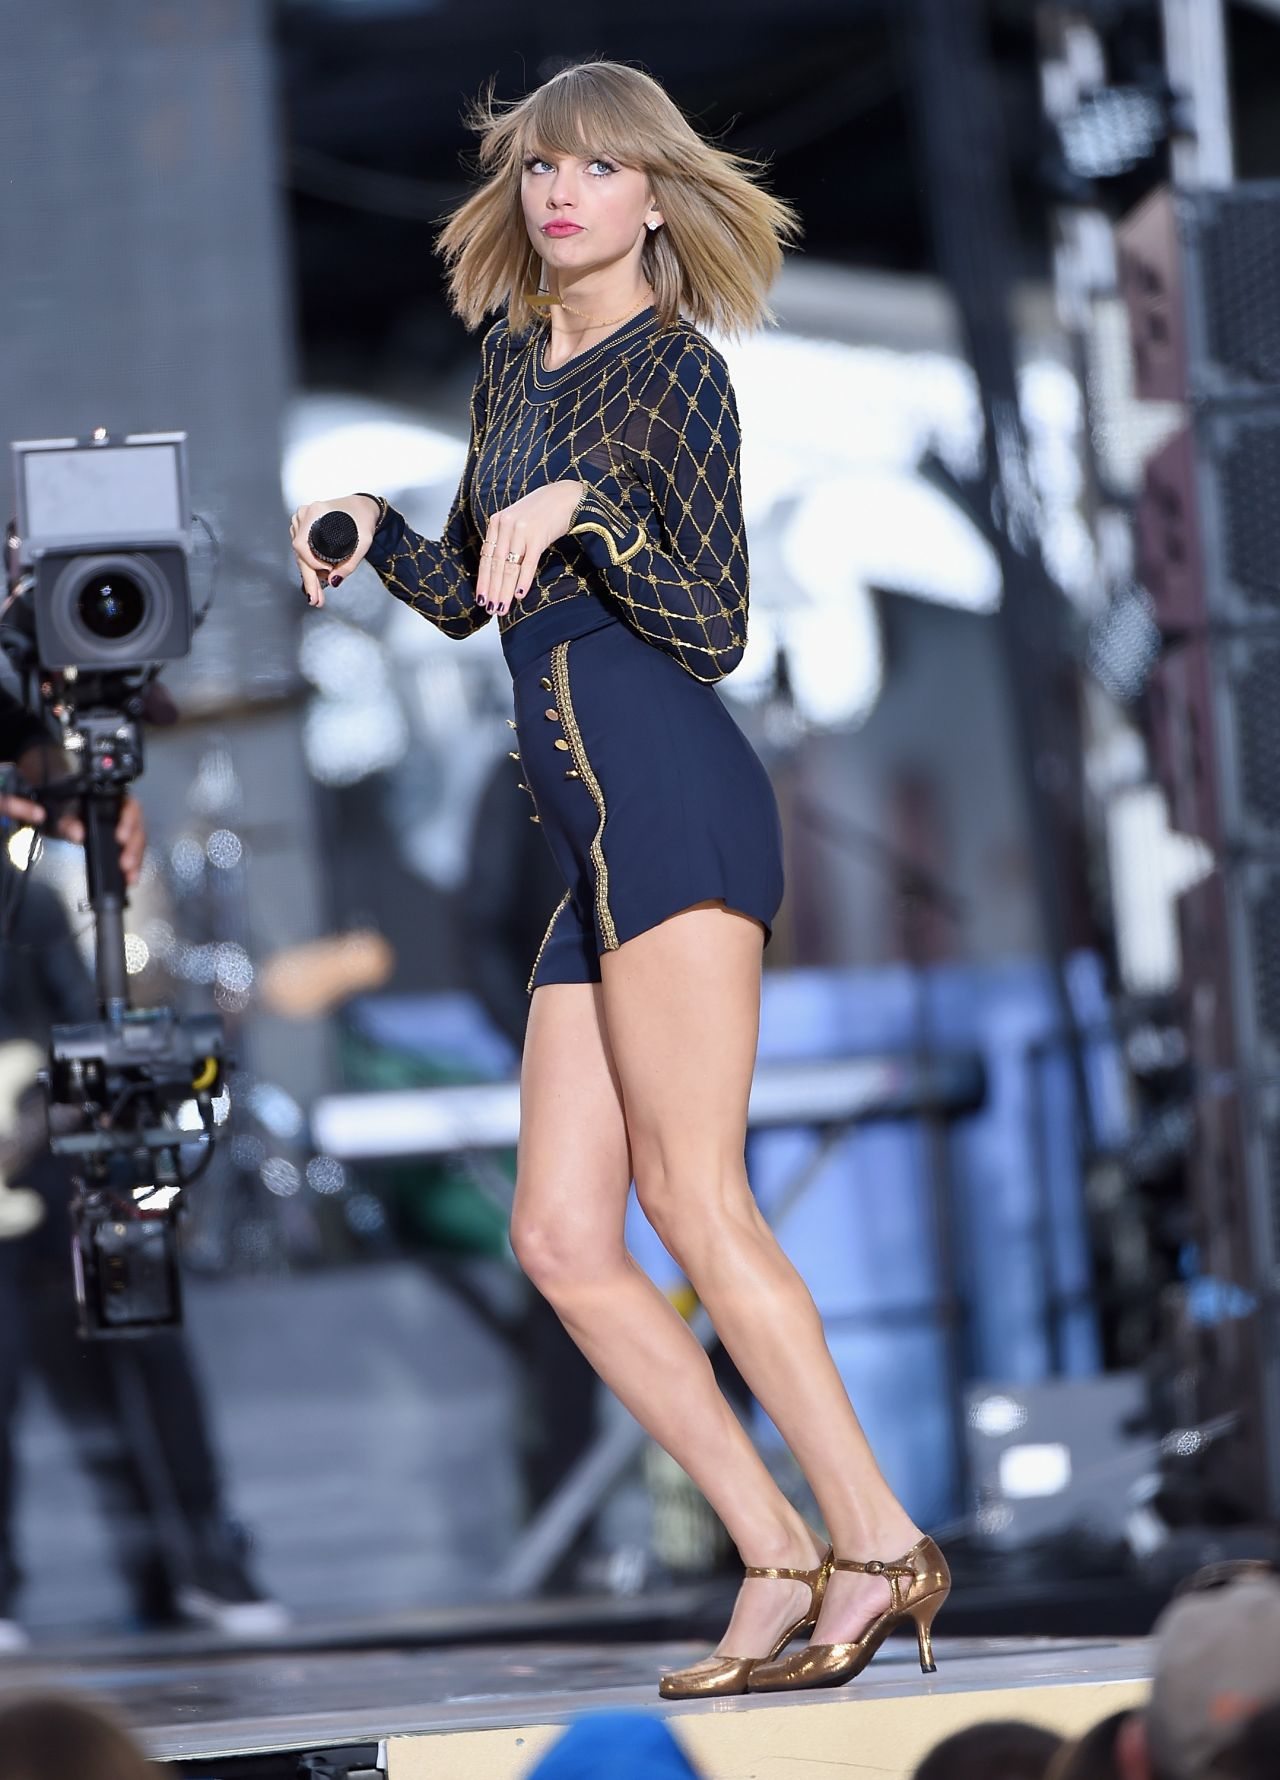 Good Morning America Performances : Taylor swift performs in concert at good morning america